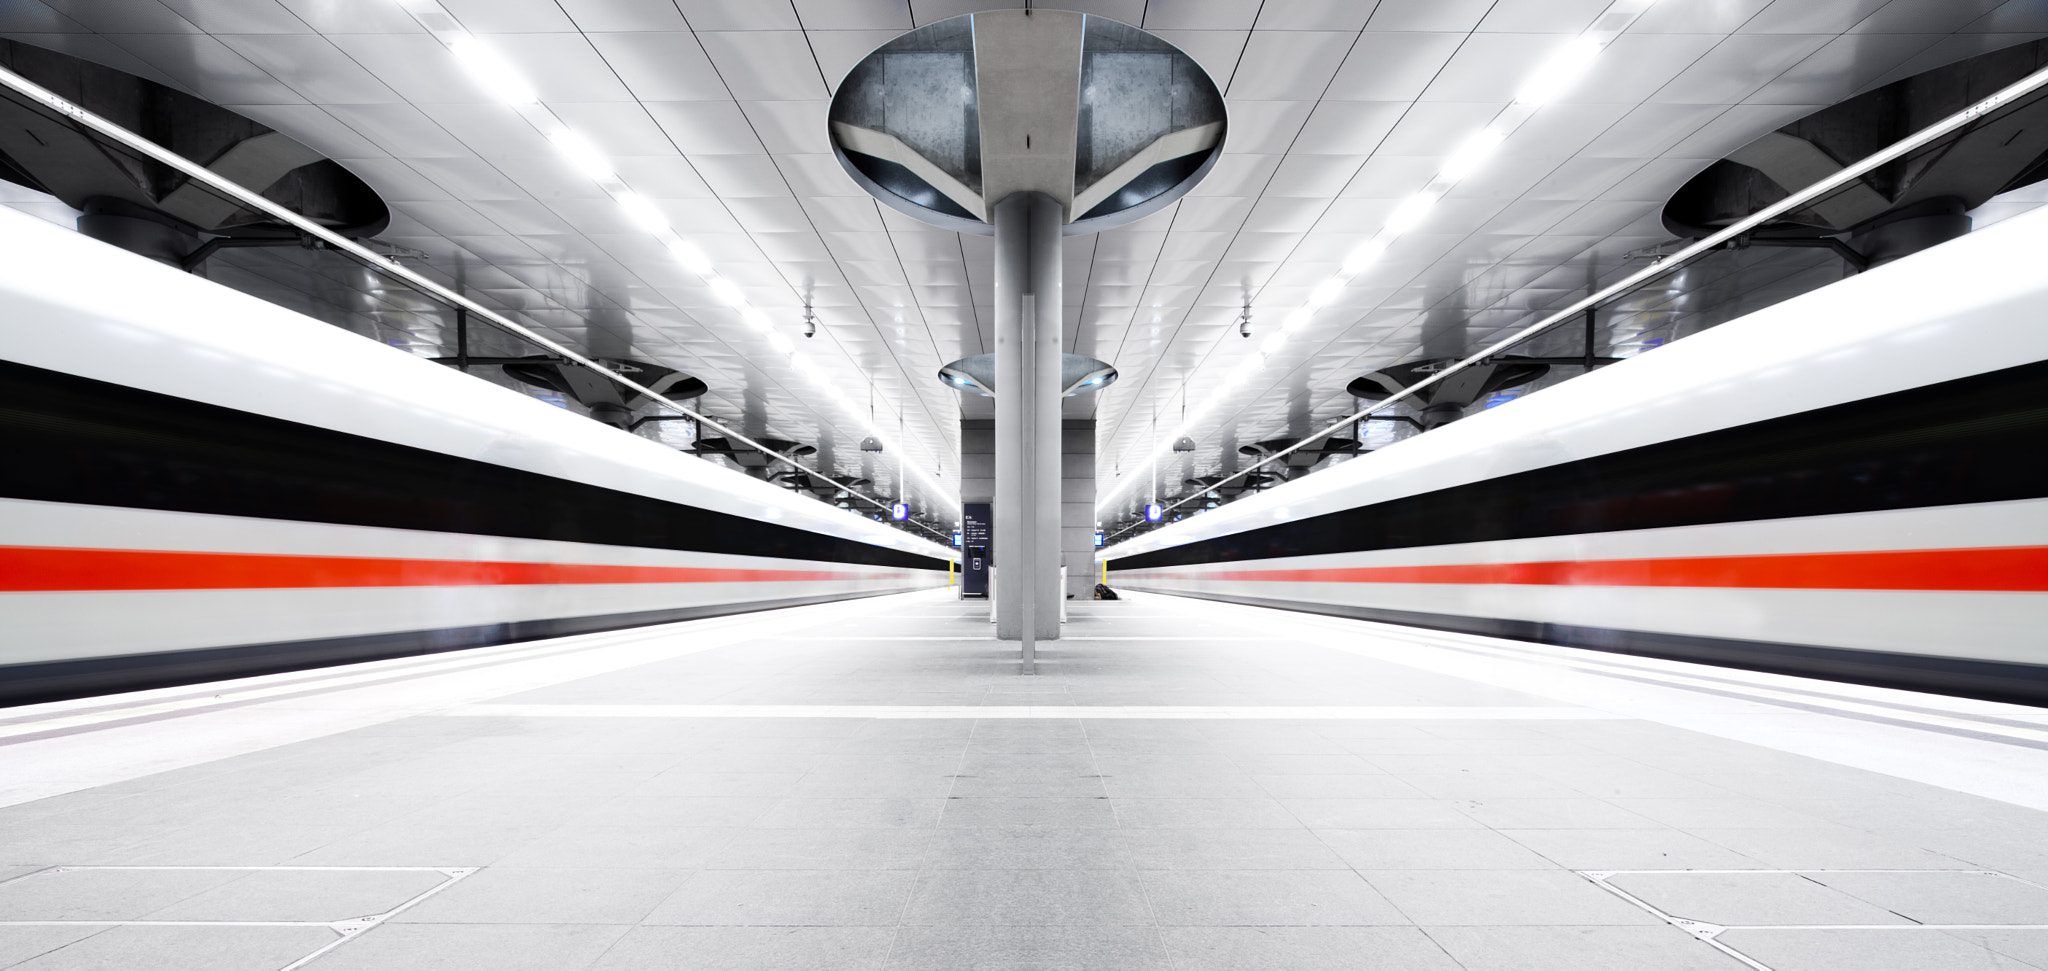 Photograph Trains by Christoph Müller on 500px